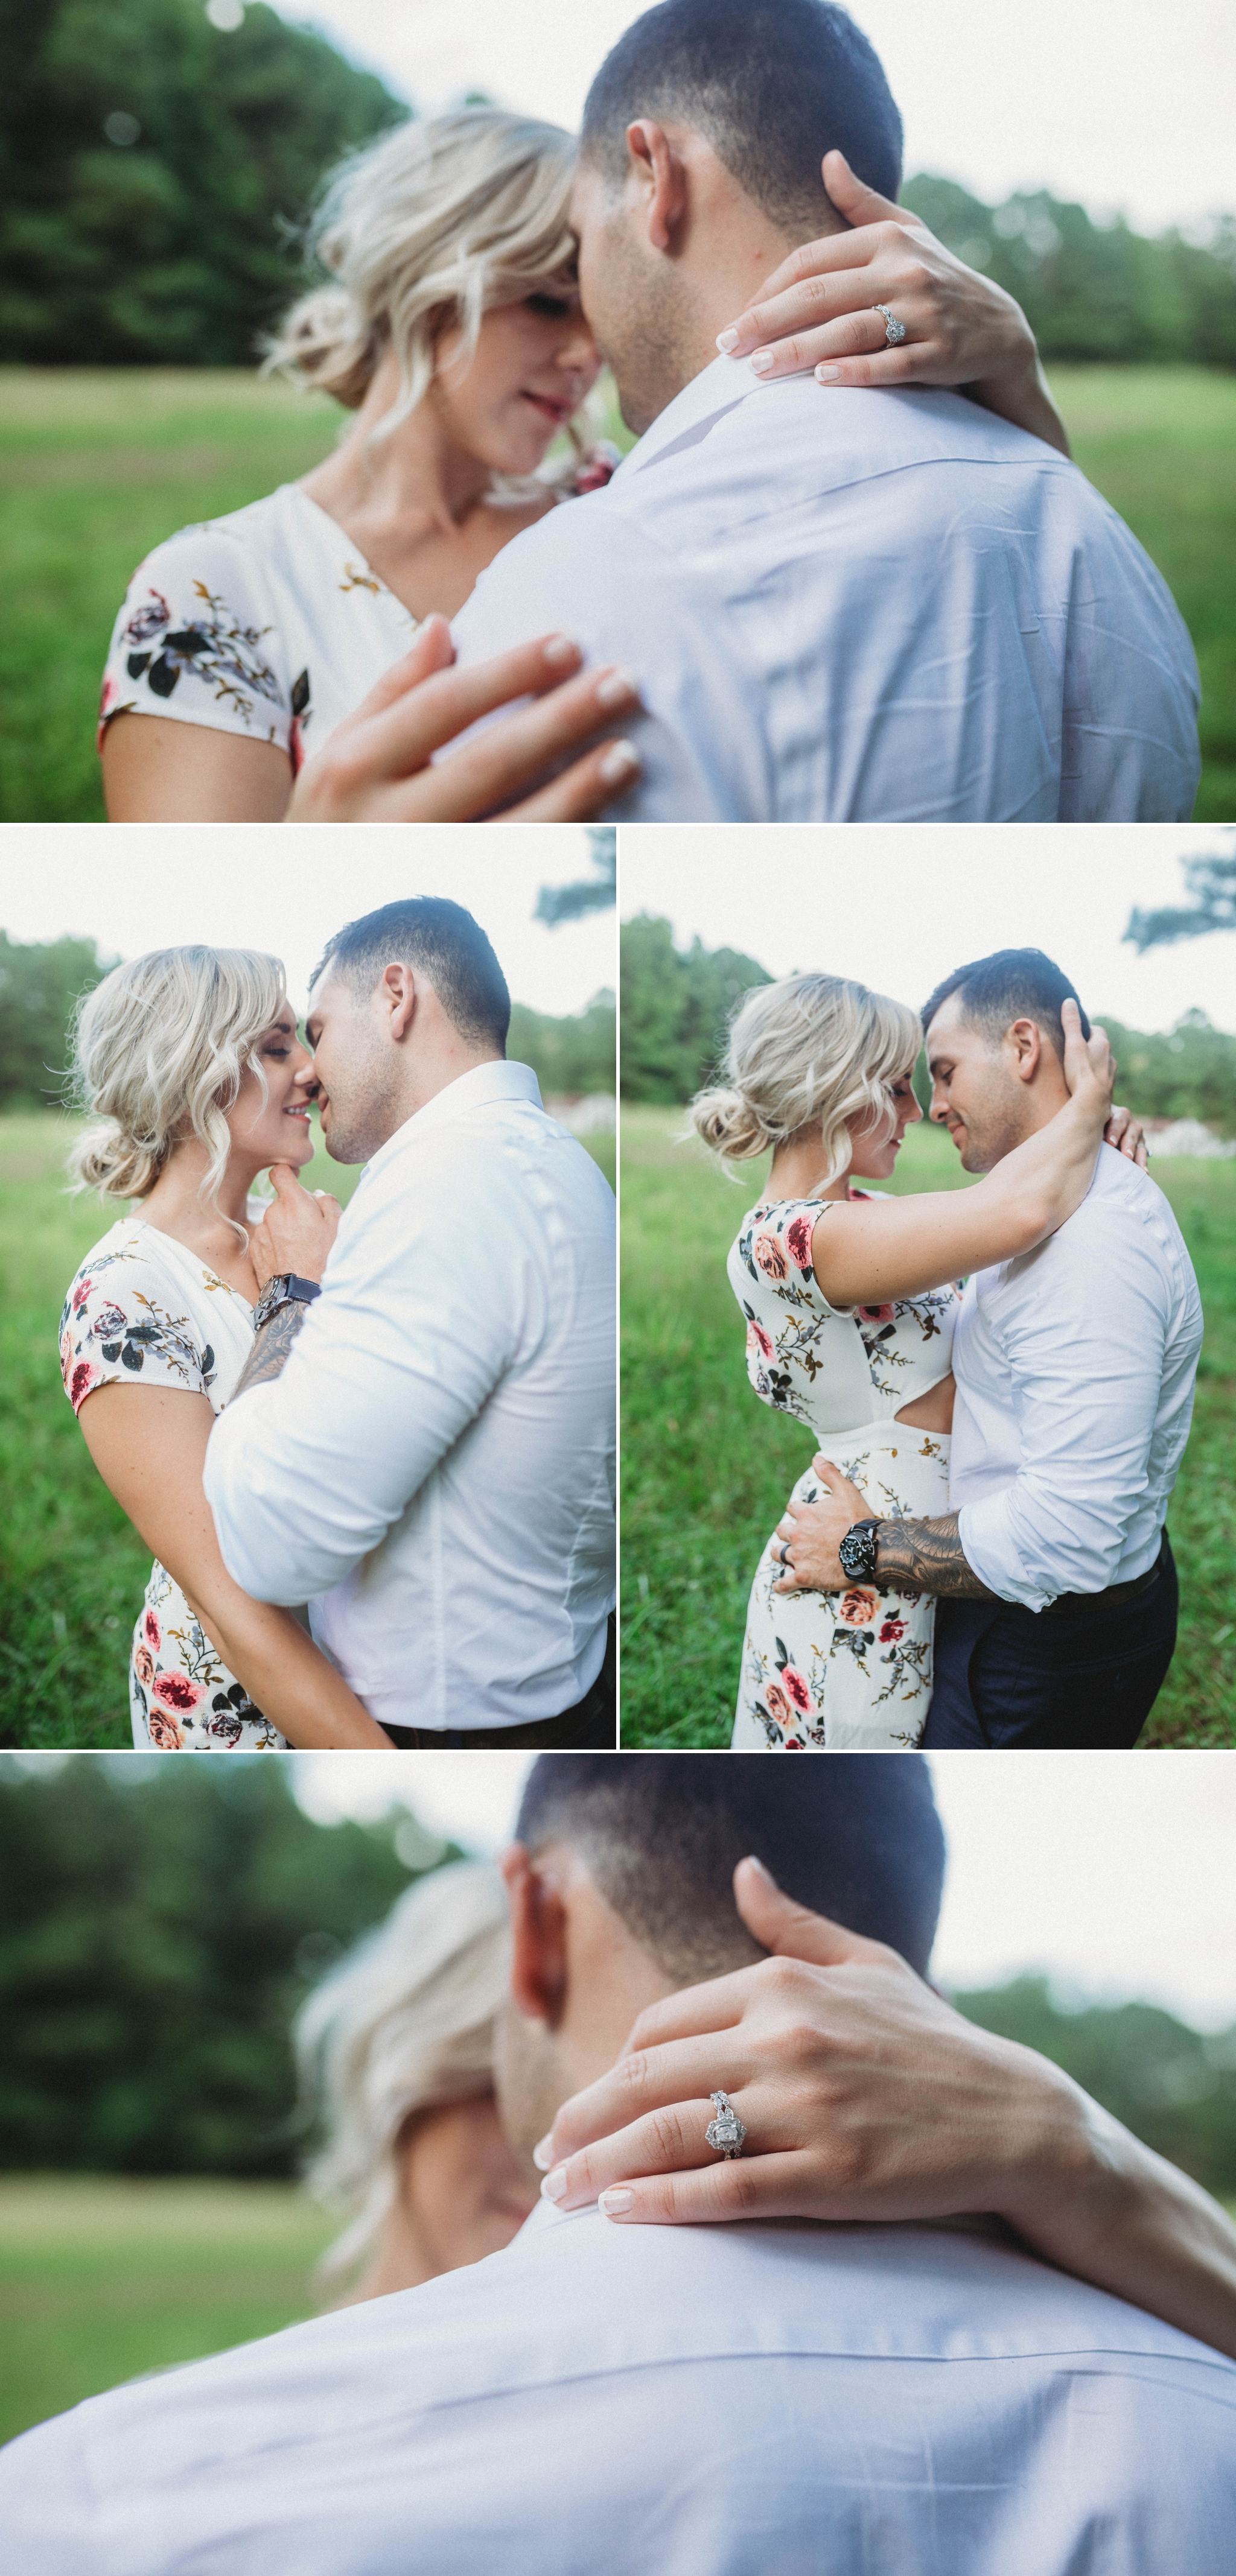 Cassie + Jesse - Engagement Photography Session in a field - Fayetteville North Carolina Wedding Photographer 6.jpg